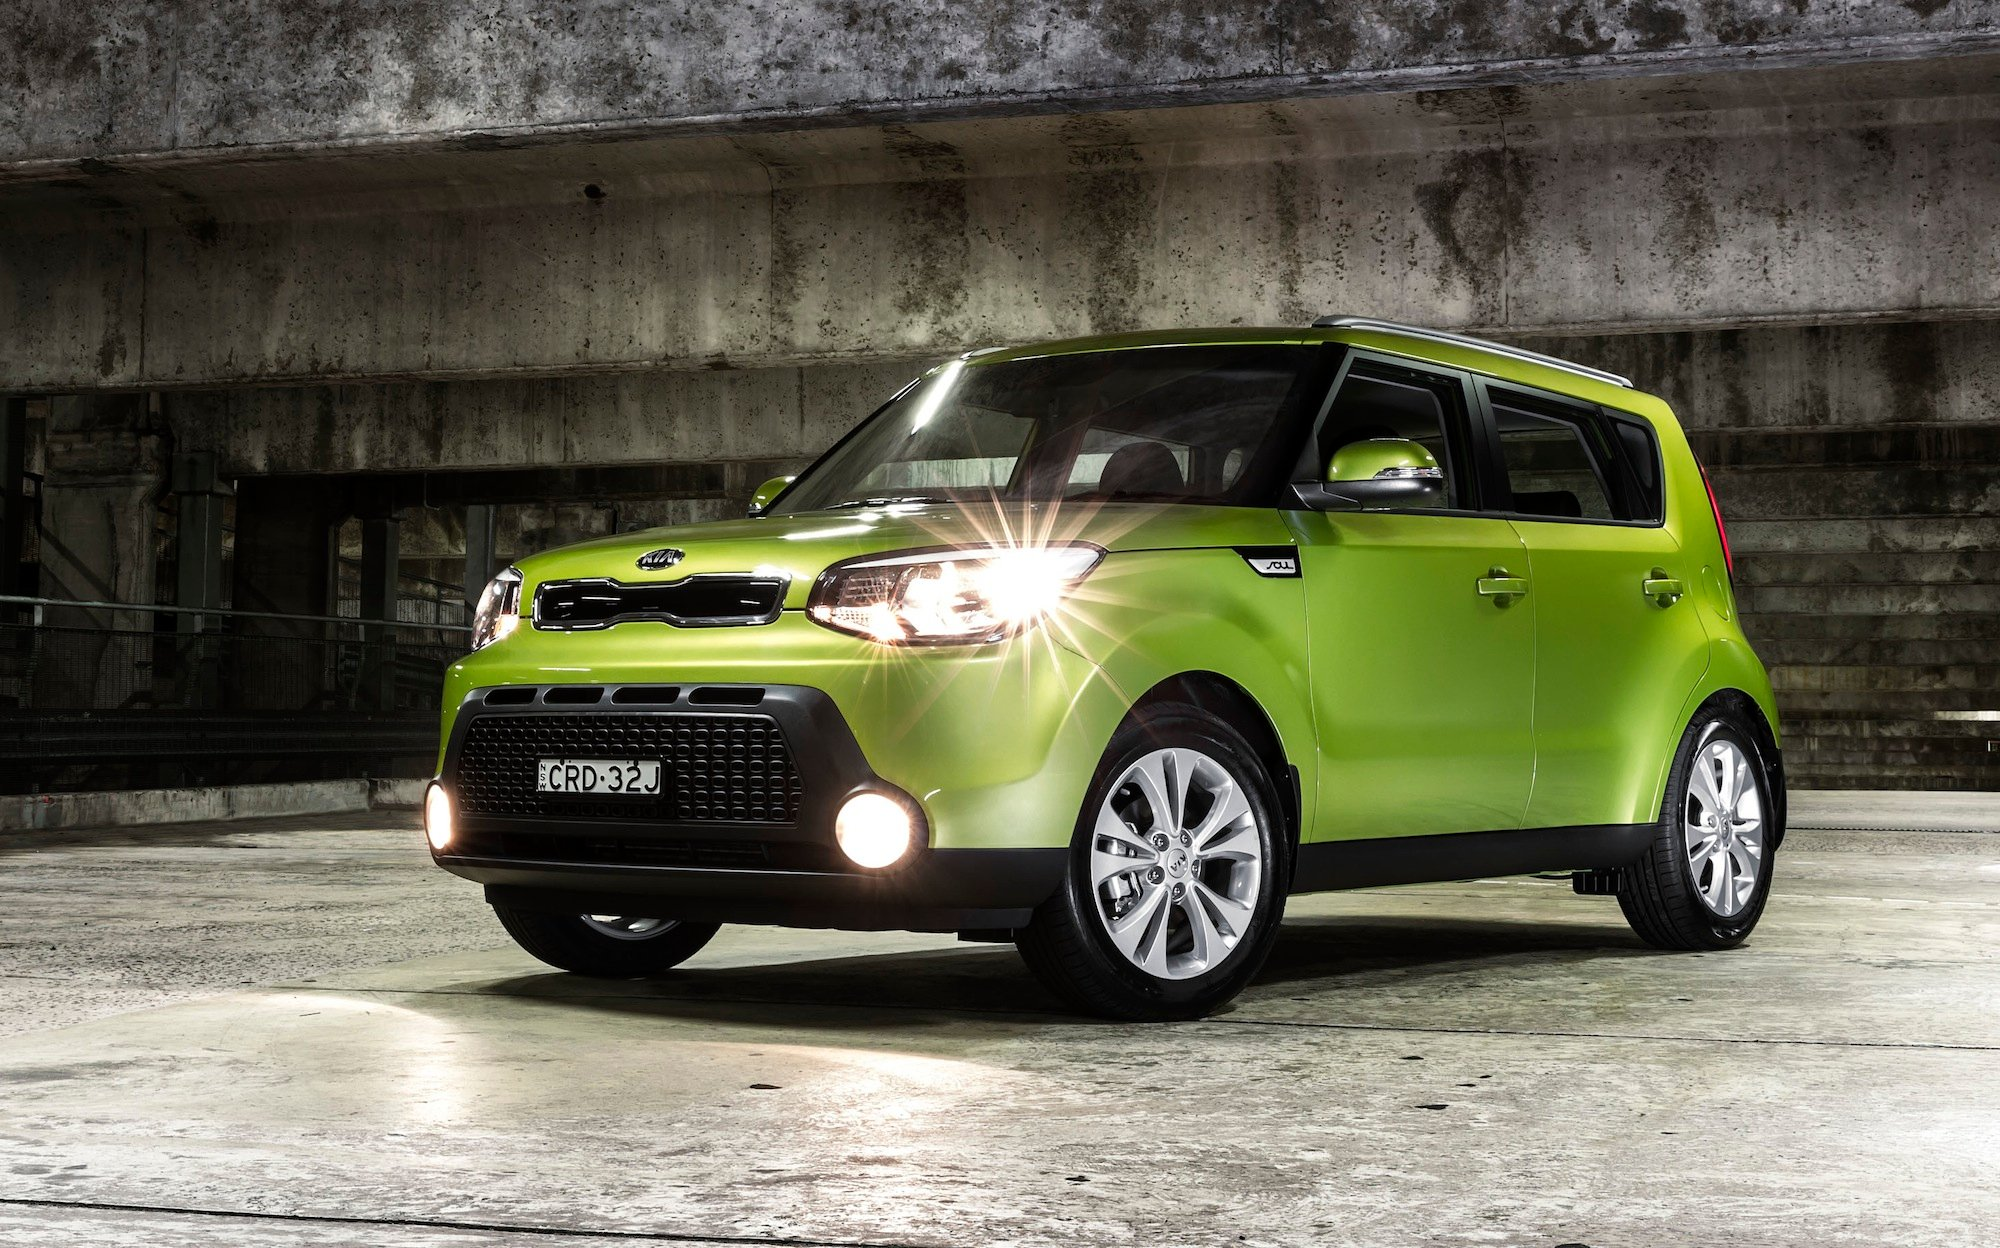 2014 Kia Soul : pricing and specifications - photos | CarAdvice